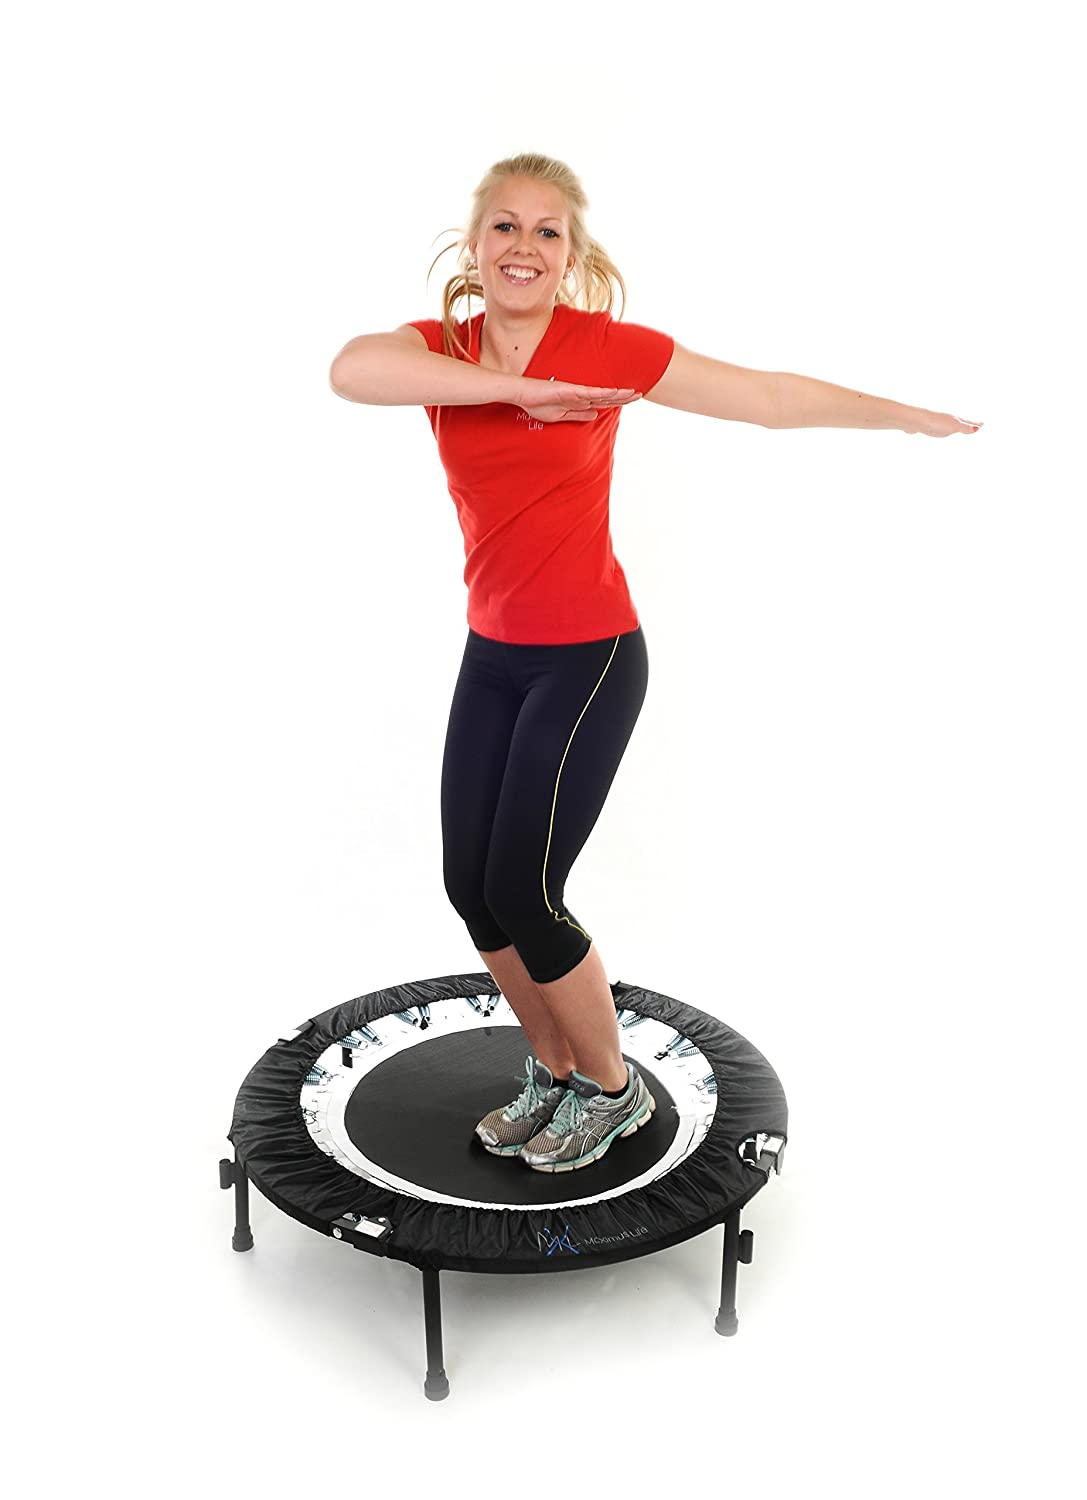 Can you lose weight by spinning in circles